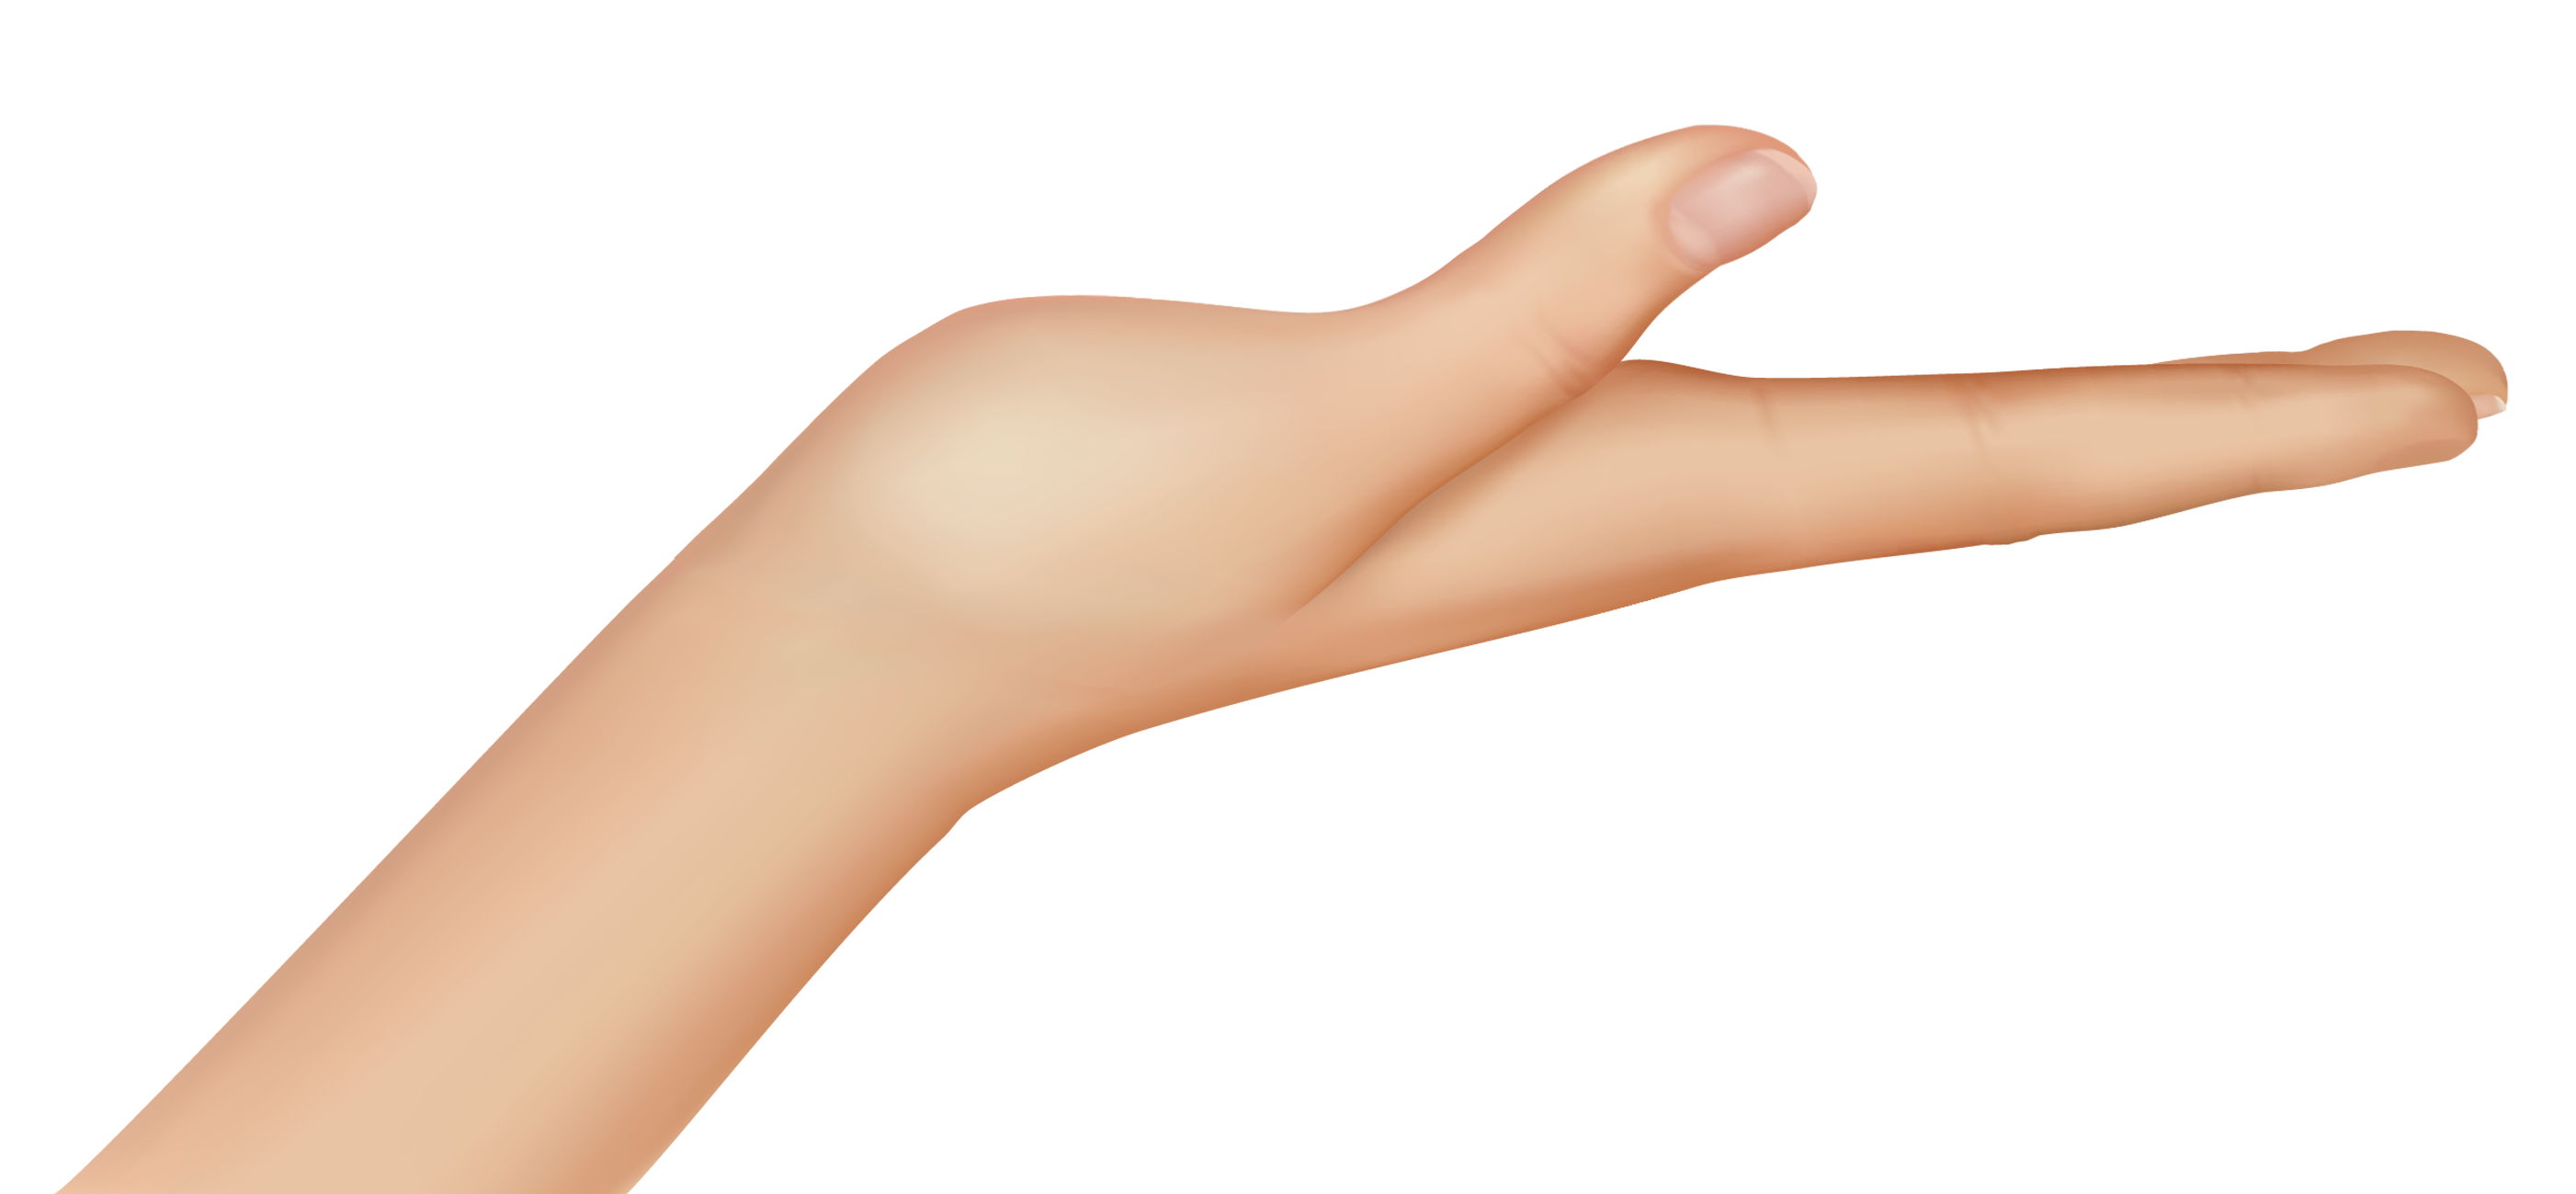 Woman hand clipart png #44754.